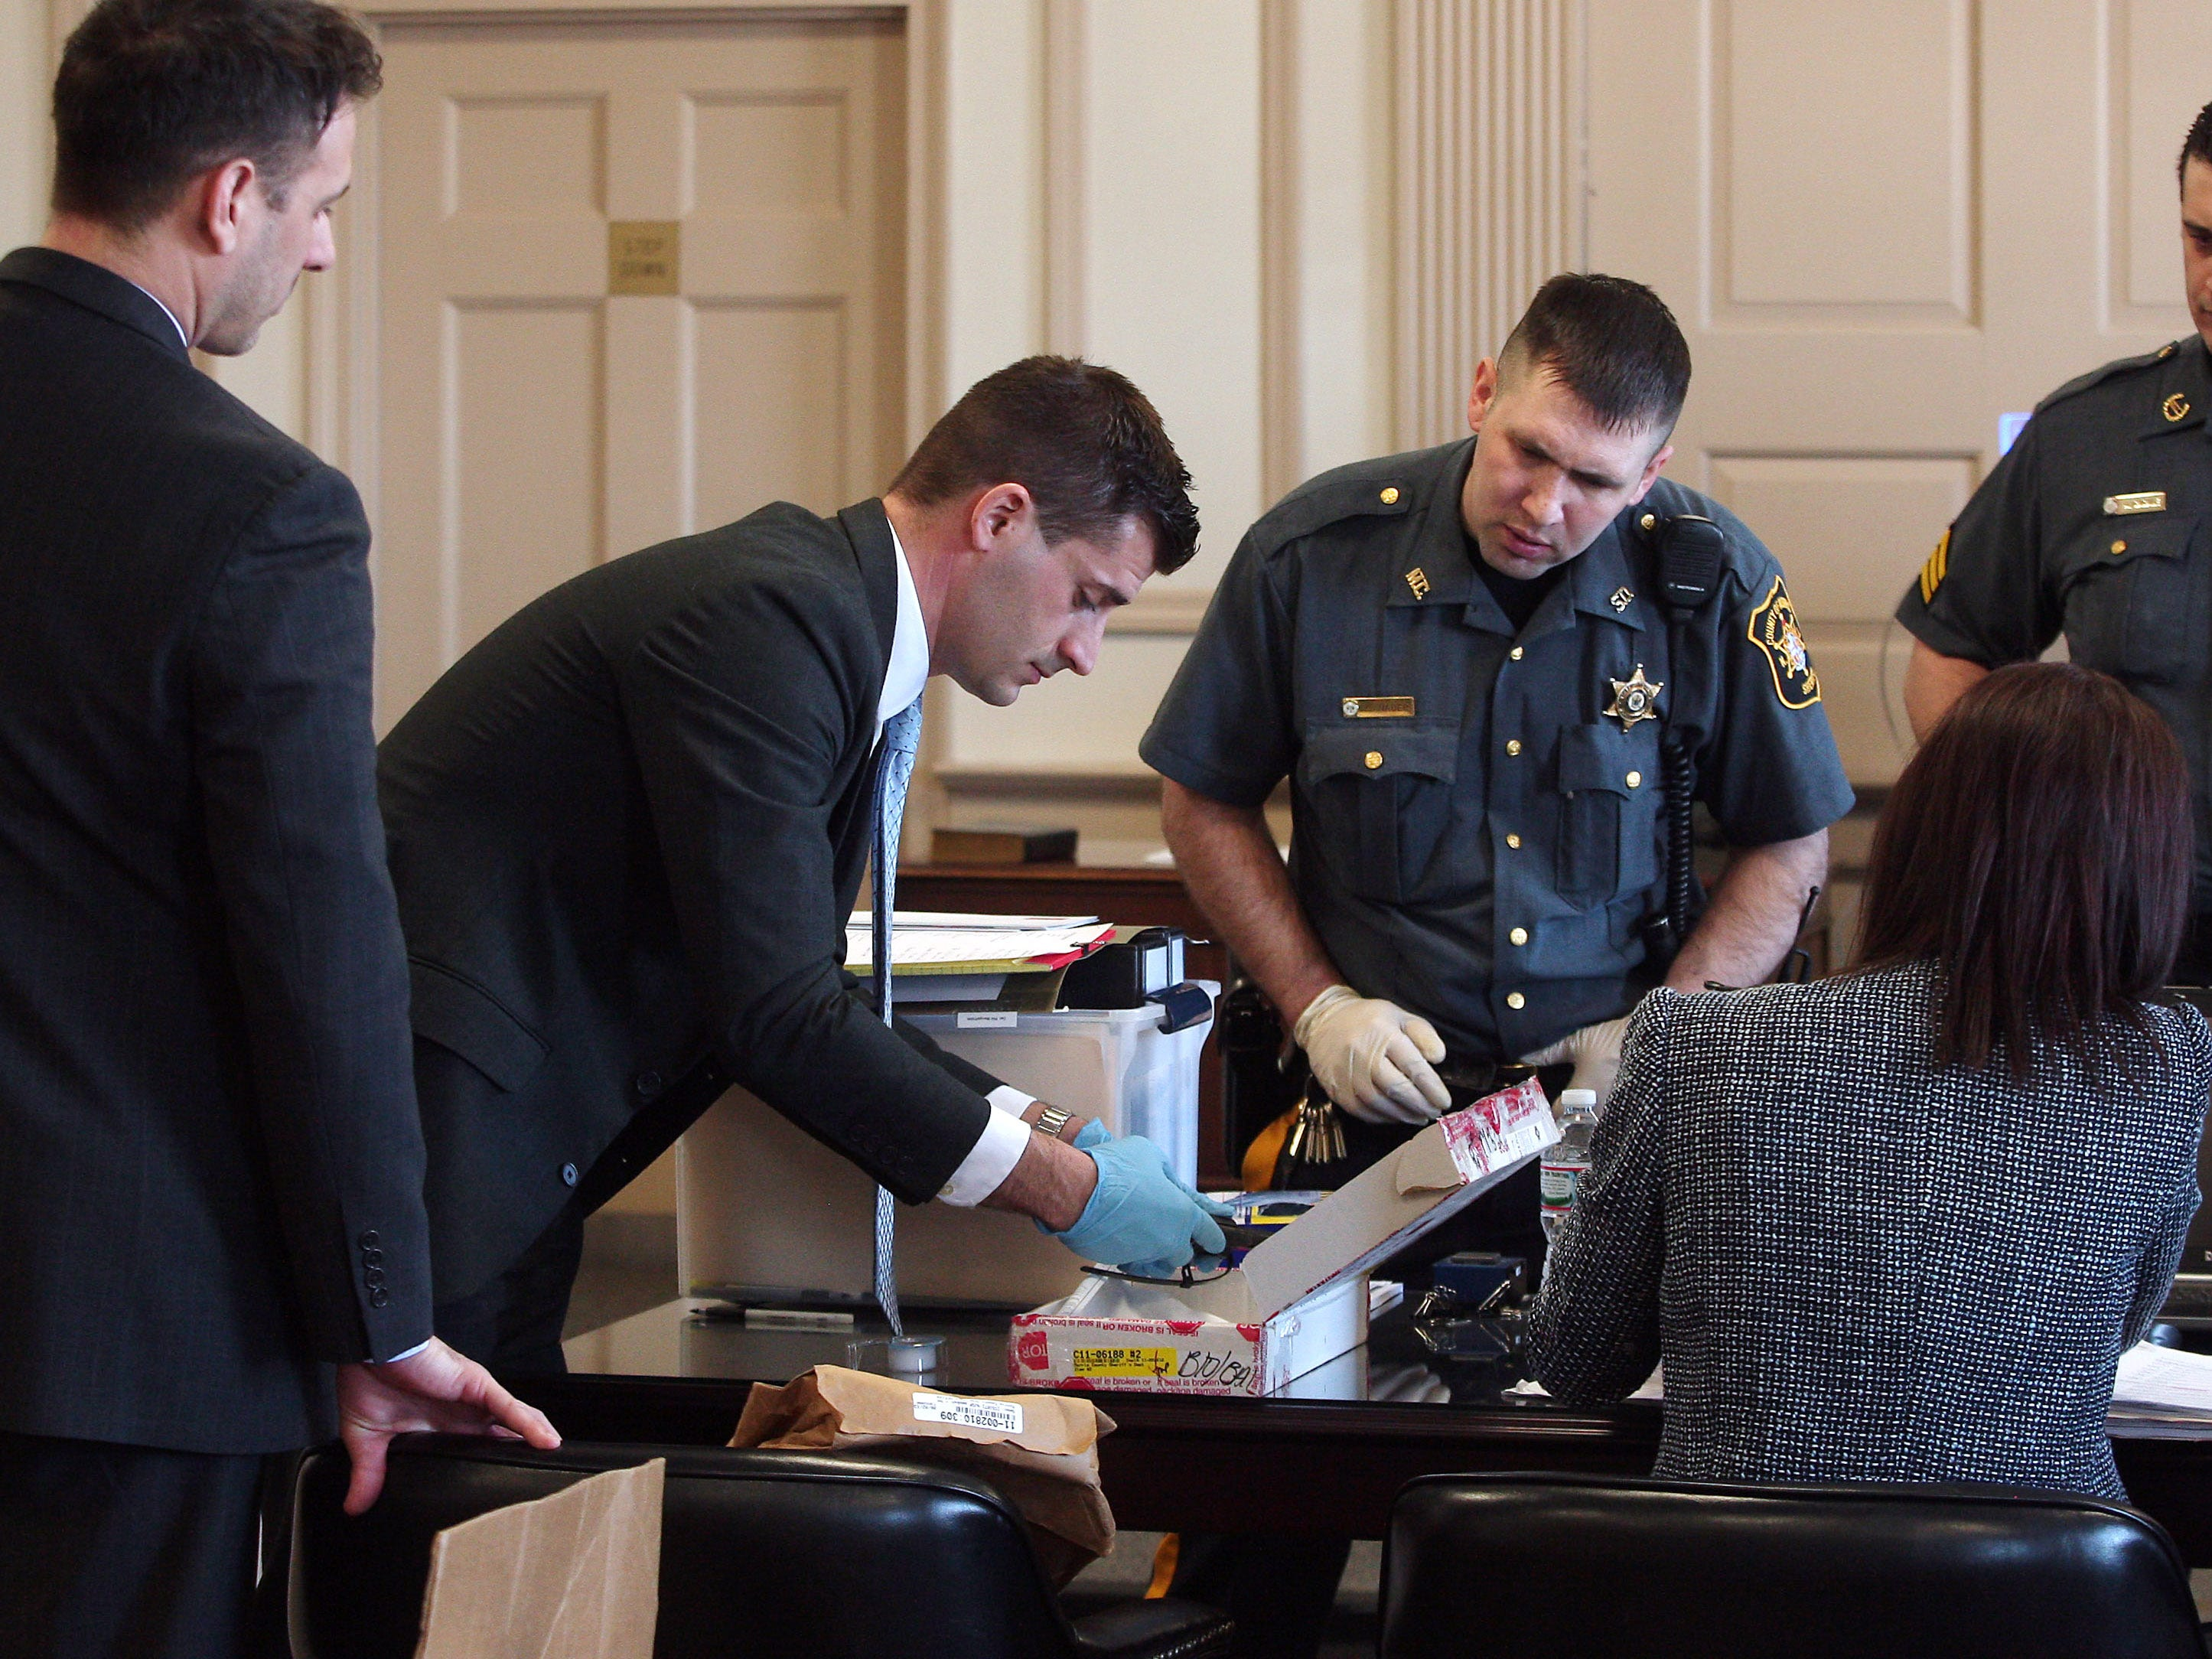 Assistant Prosecutor Matthew Troiano takes a look at one of three guns found at the residence of Antionette Stephen. Stephen pleaded guilty to murder last year and is expected to testify against Kashif Parvaiz in his murder trial, accused of killing his wife Nazish Noorani in August 2011.  February 11, 2015. Morristown, N.J. Bob Karp/Staff Photographer.